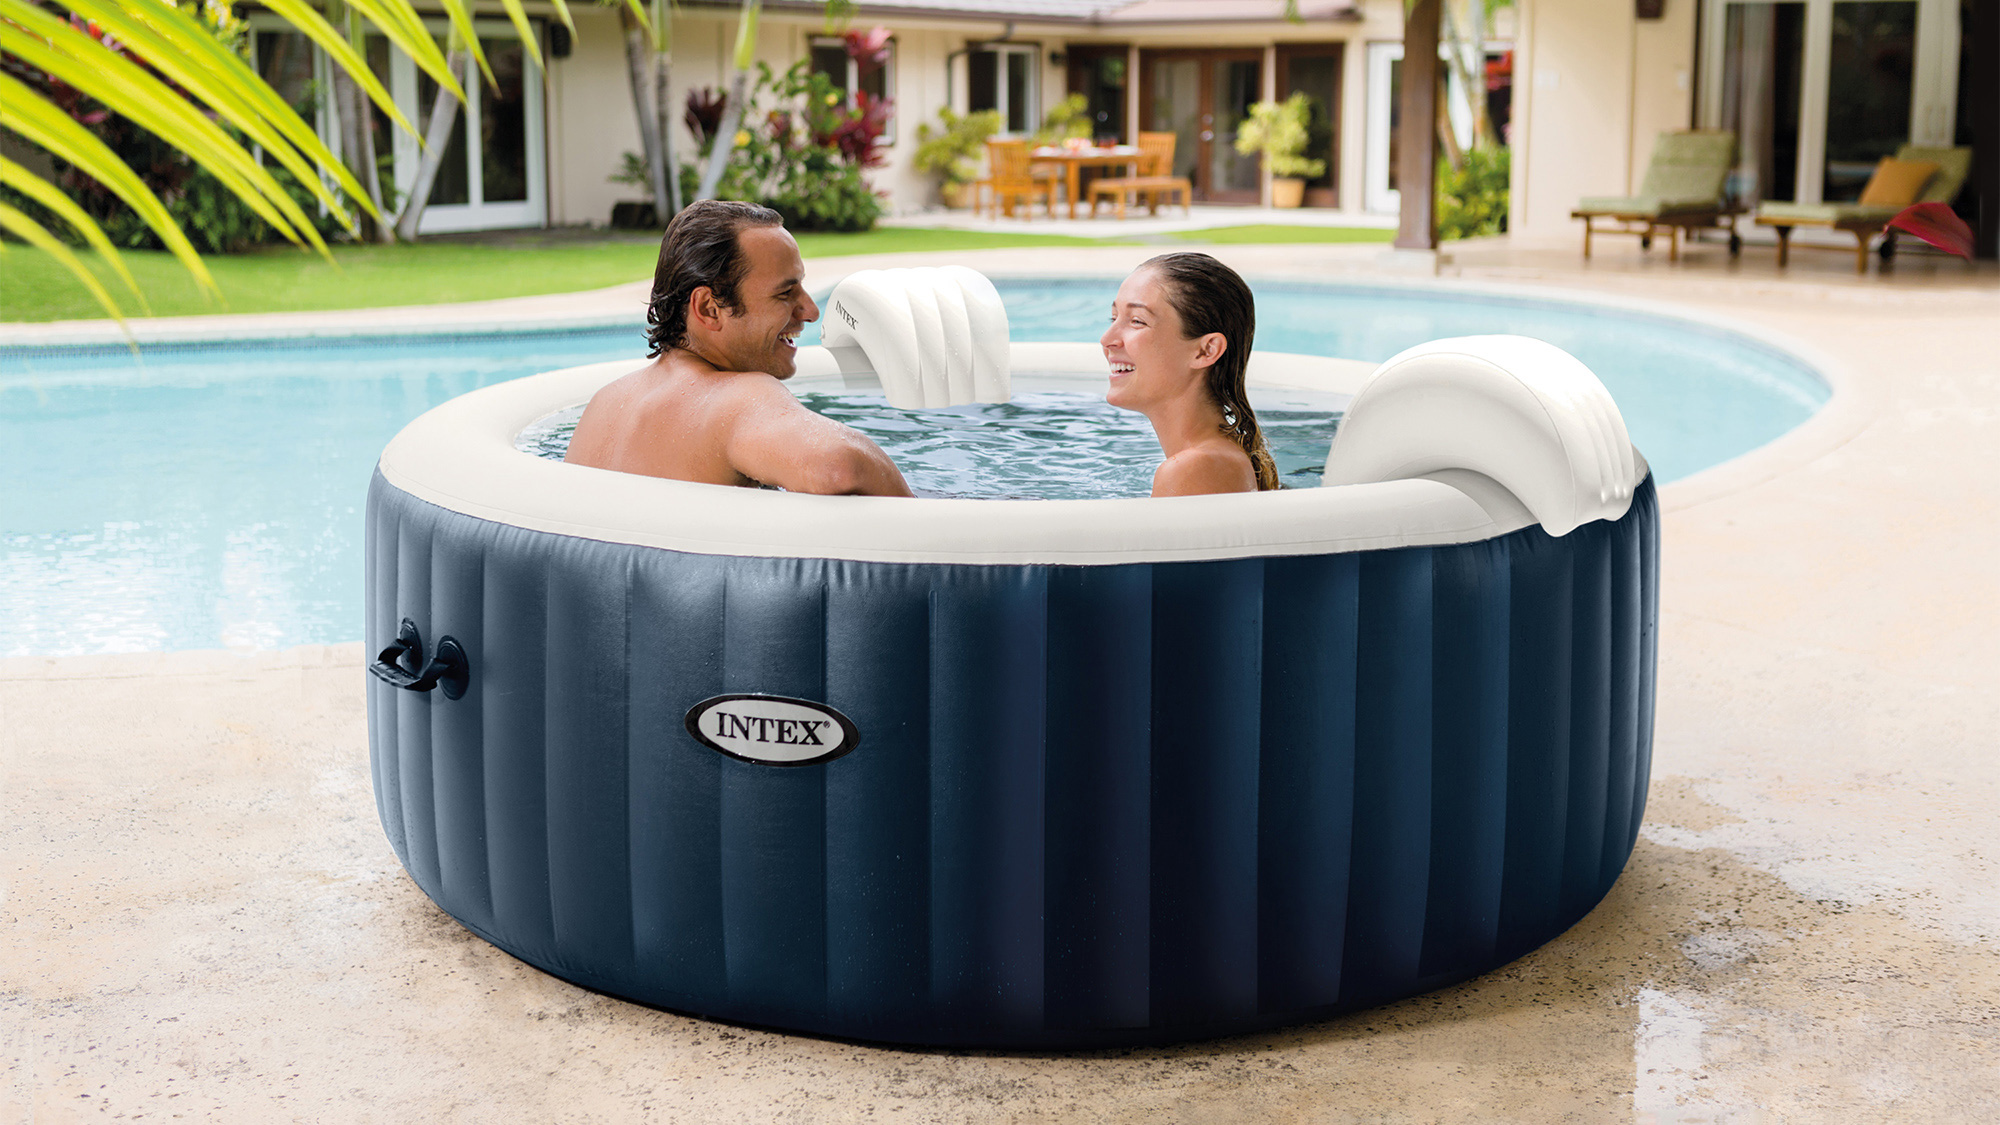 Cheap Hot Tubs Affordable Buys Under 600 750 For April 2021 Gardeningetc